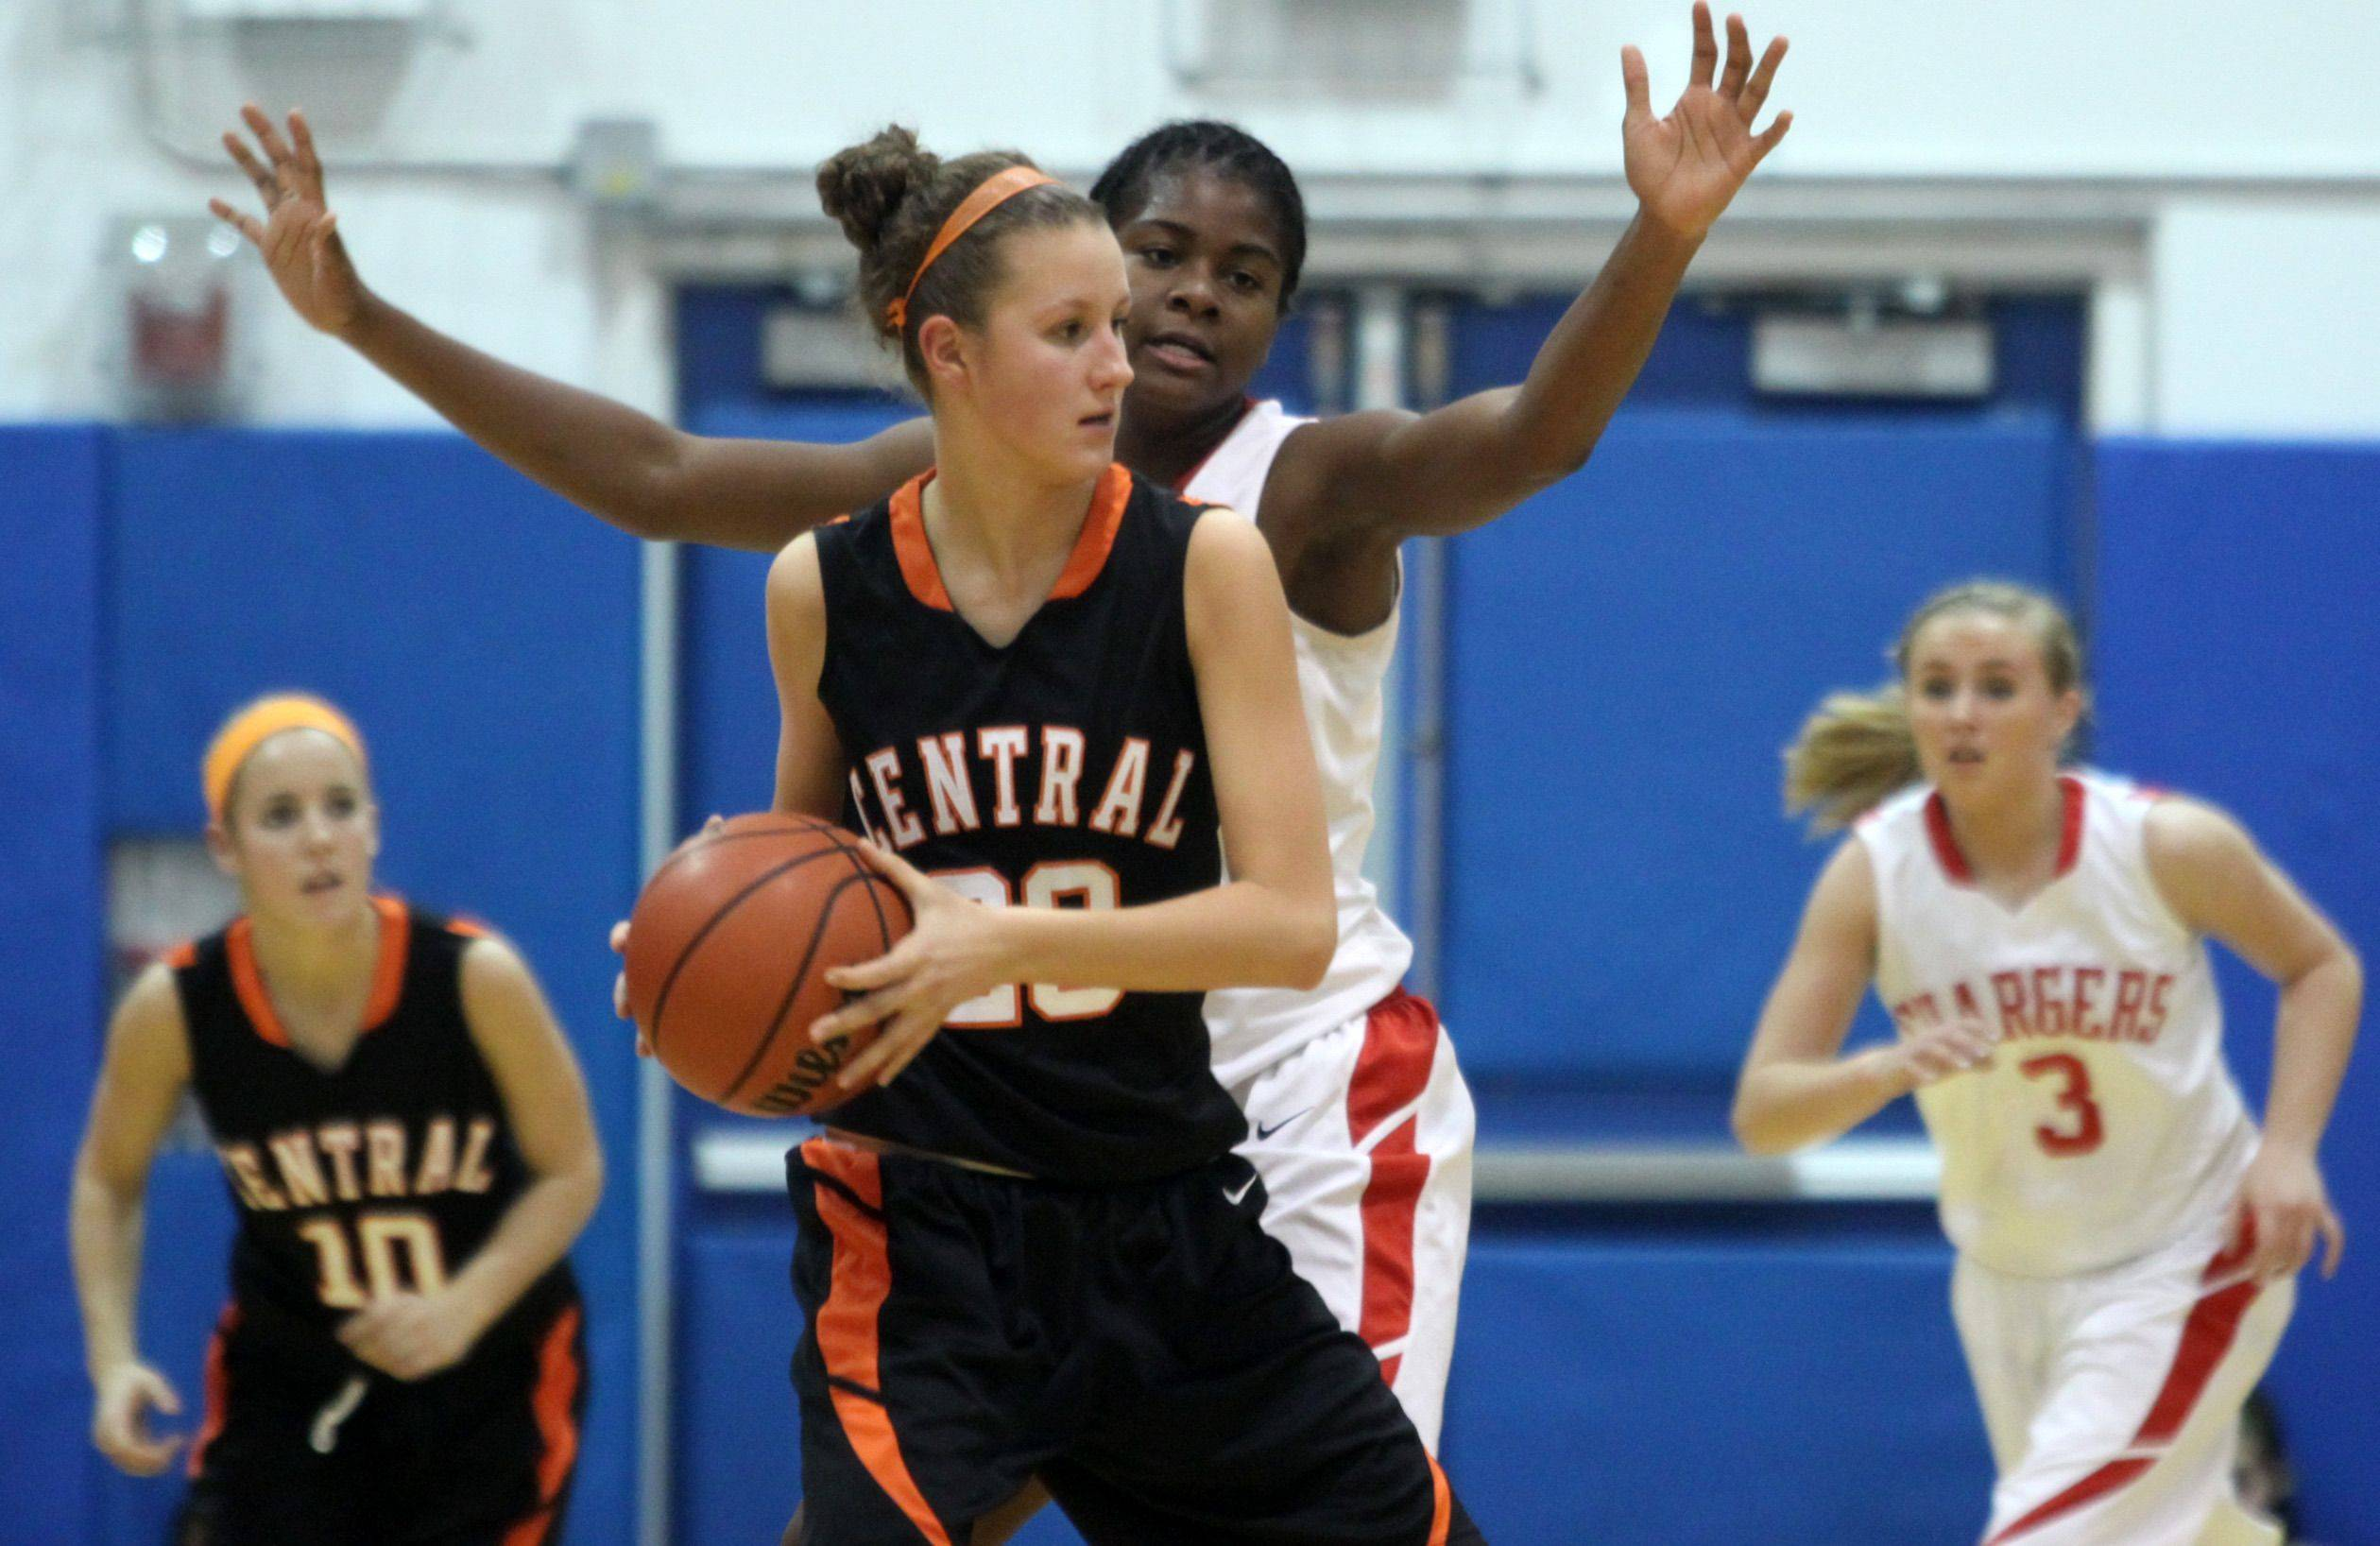 Images from Dundee-Crown against Crystal Lake Central girls basketball at Carpentersville on Monday, Dec. 6, 2010.